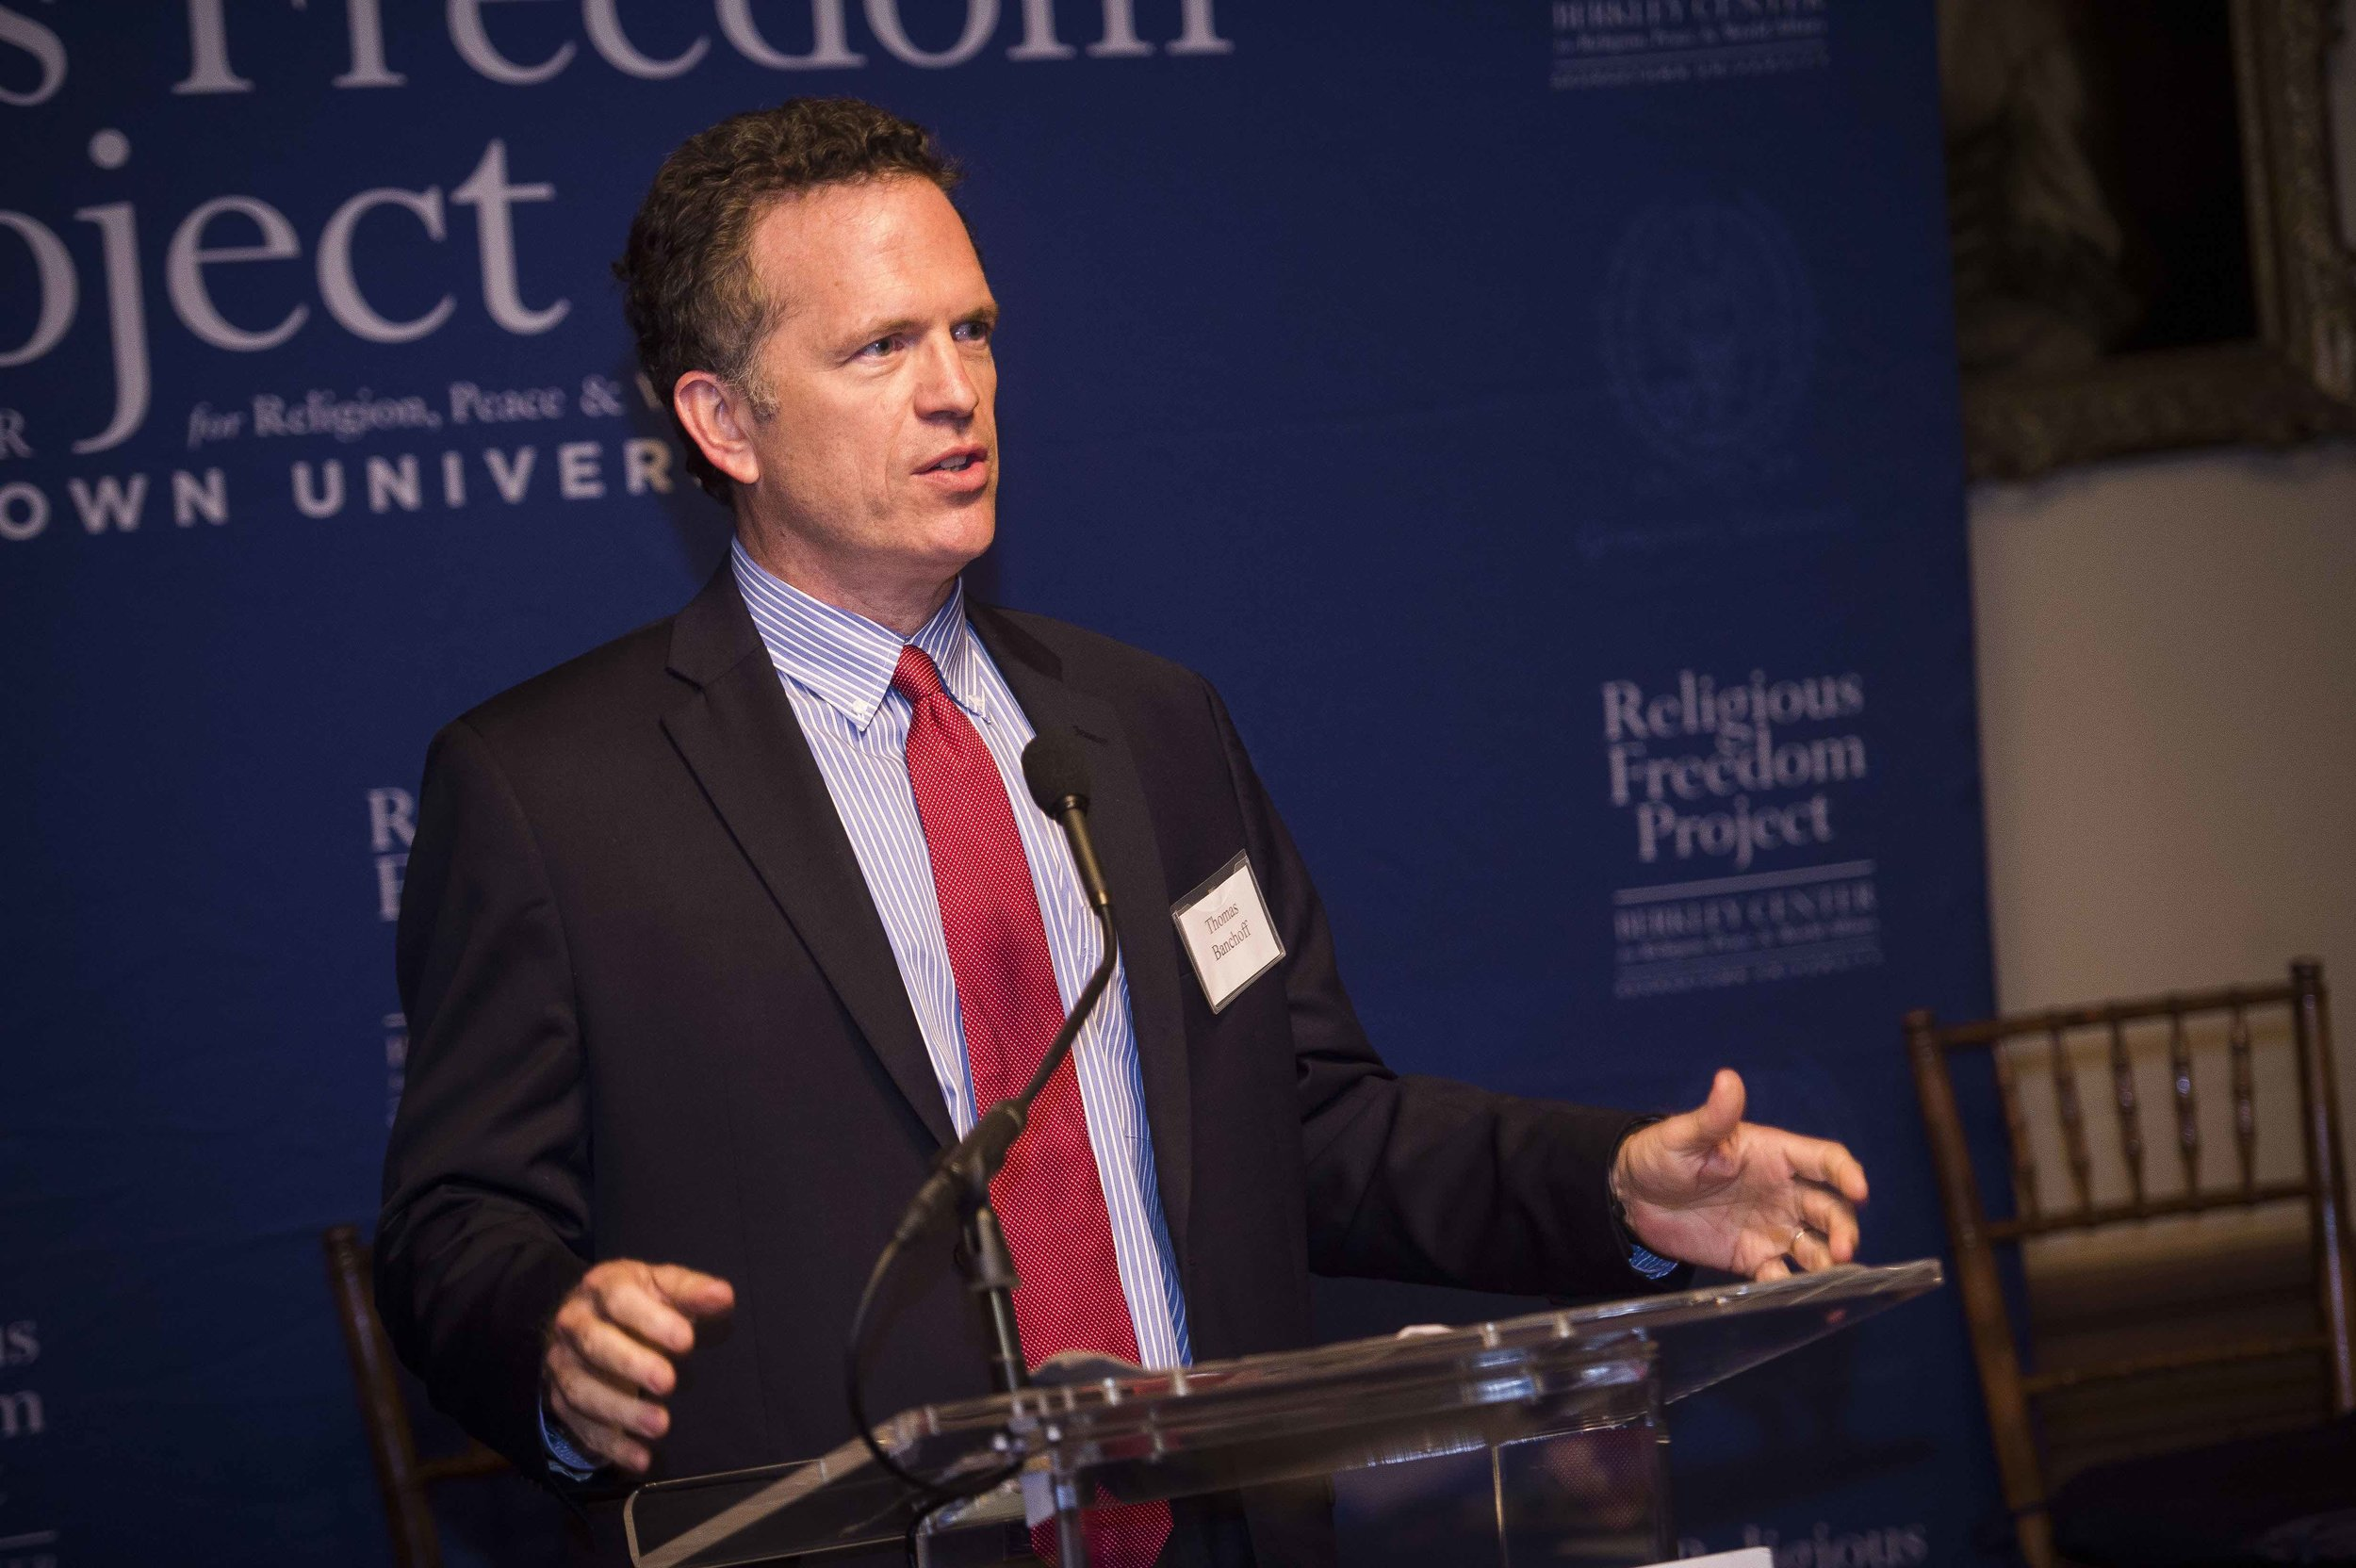 Thomas Banchoff, Director, Berkley Center for Religion, Peace, and World Affairs